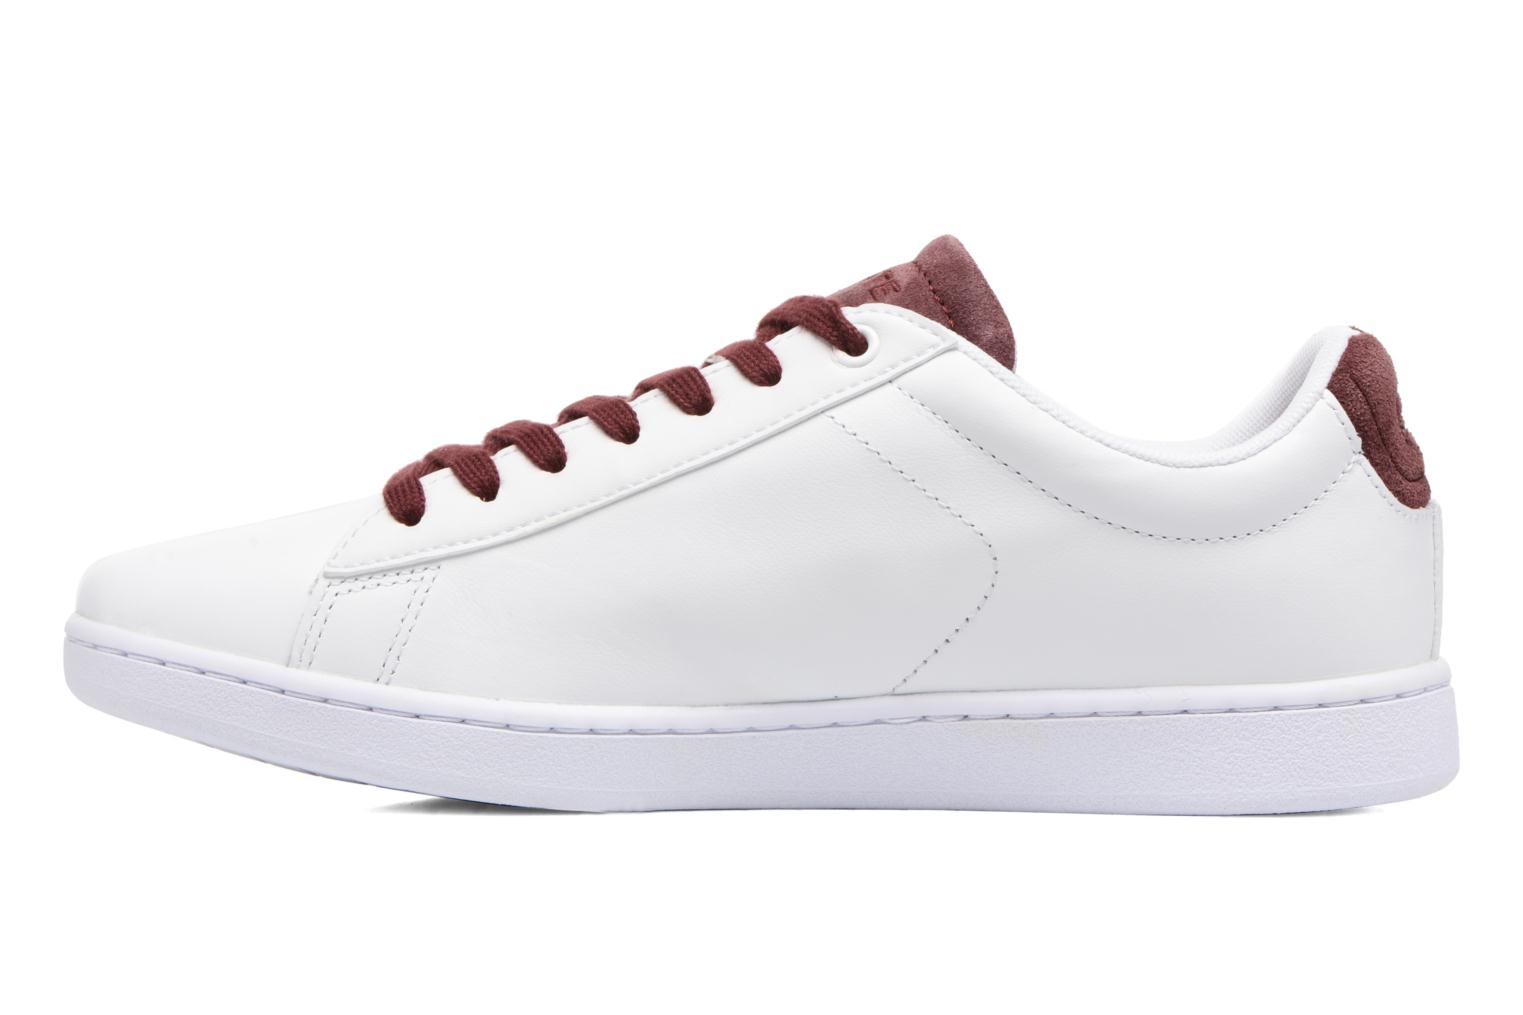 Carnaby Evo 317 1 WHT/RED